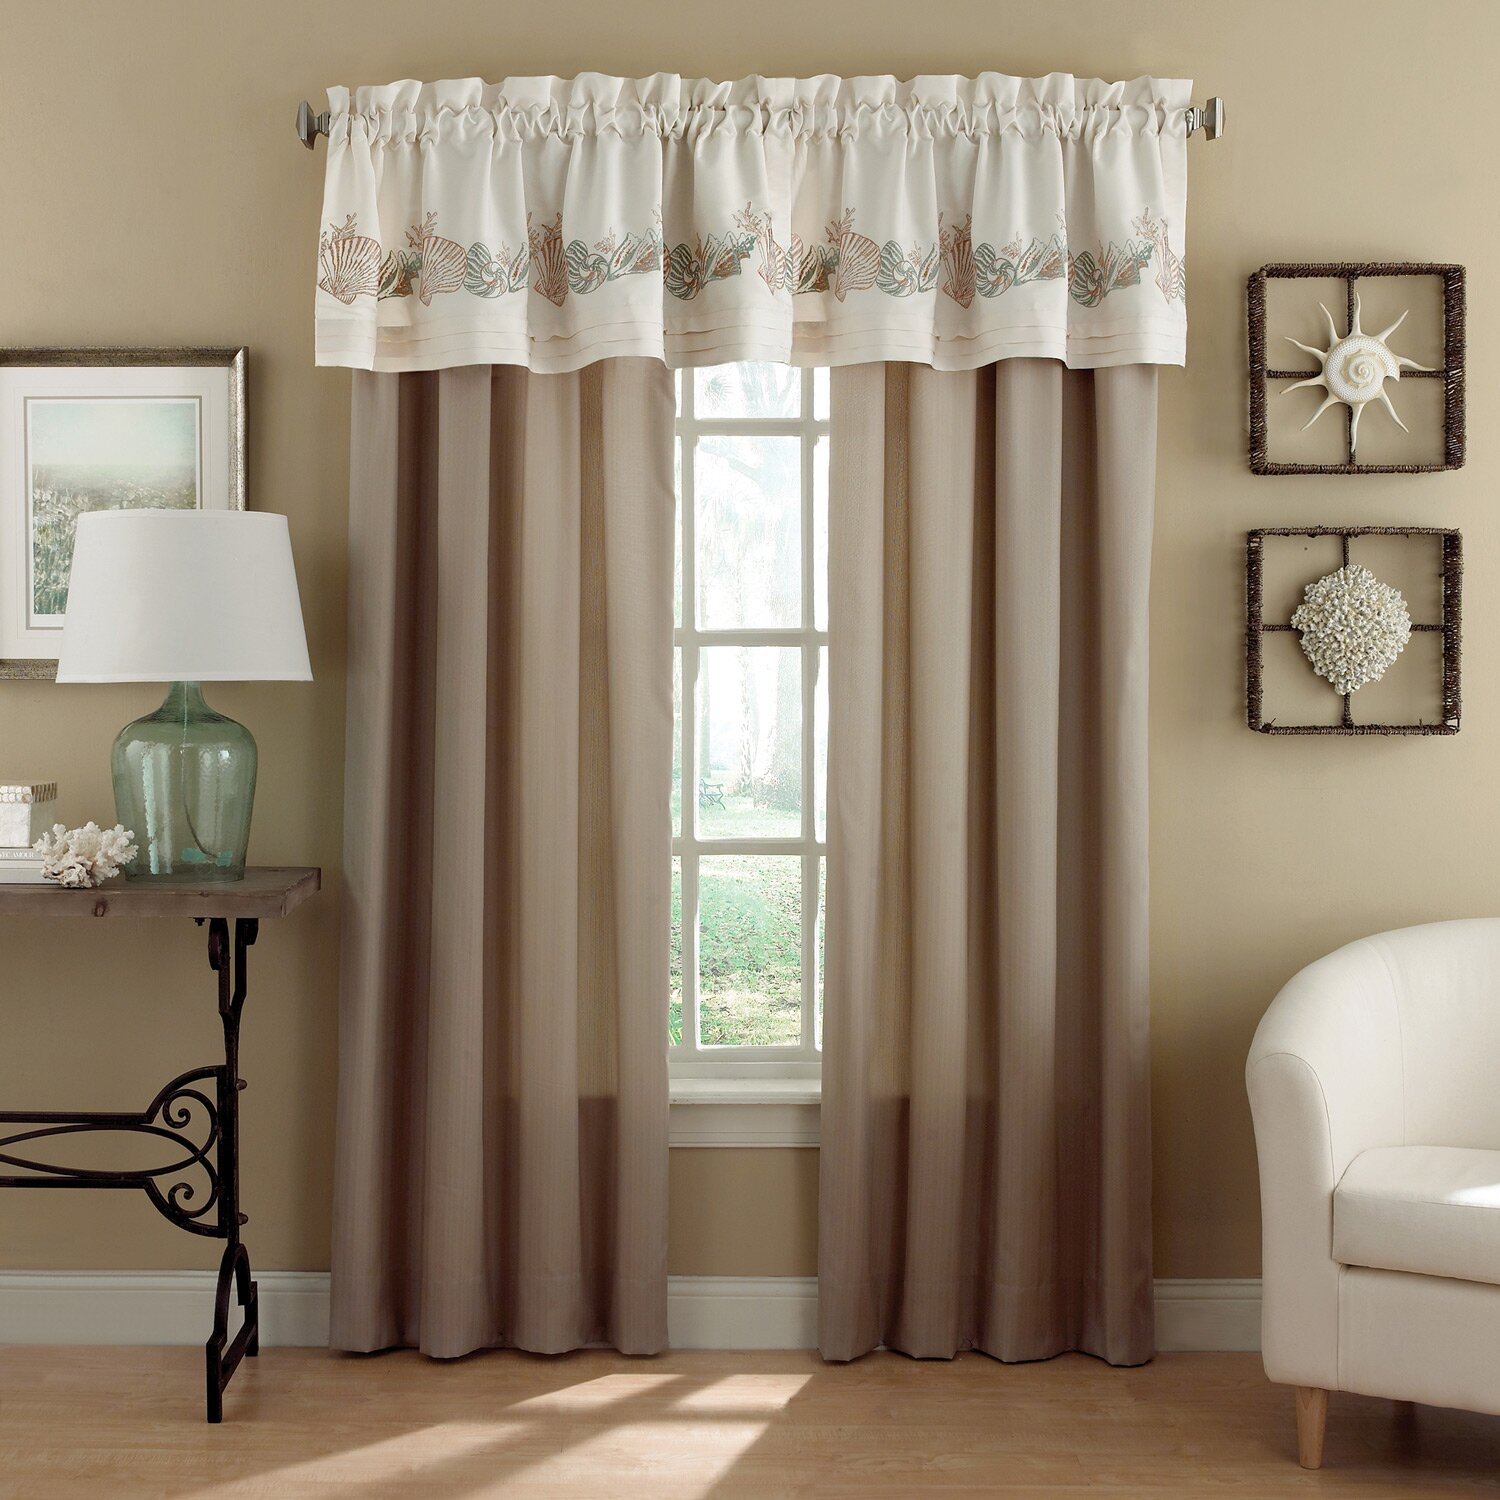 croscill seashore 54 valance reviews wayfair. Black Bedroom Furniture Sets. Home Design Ideas